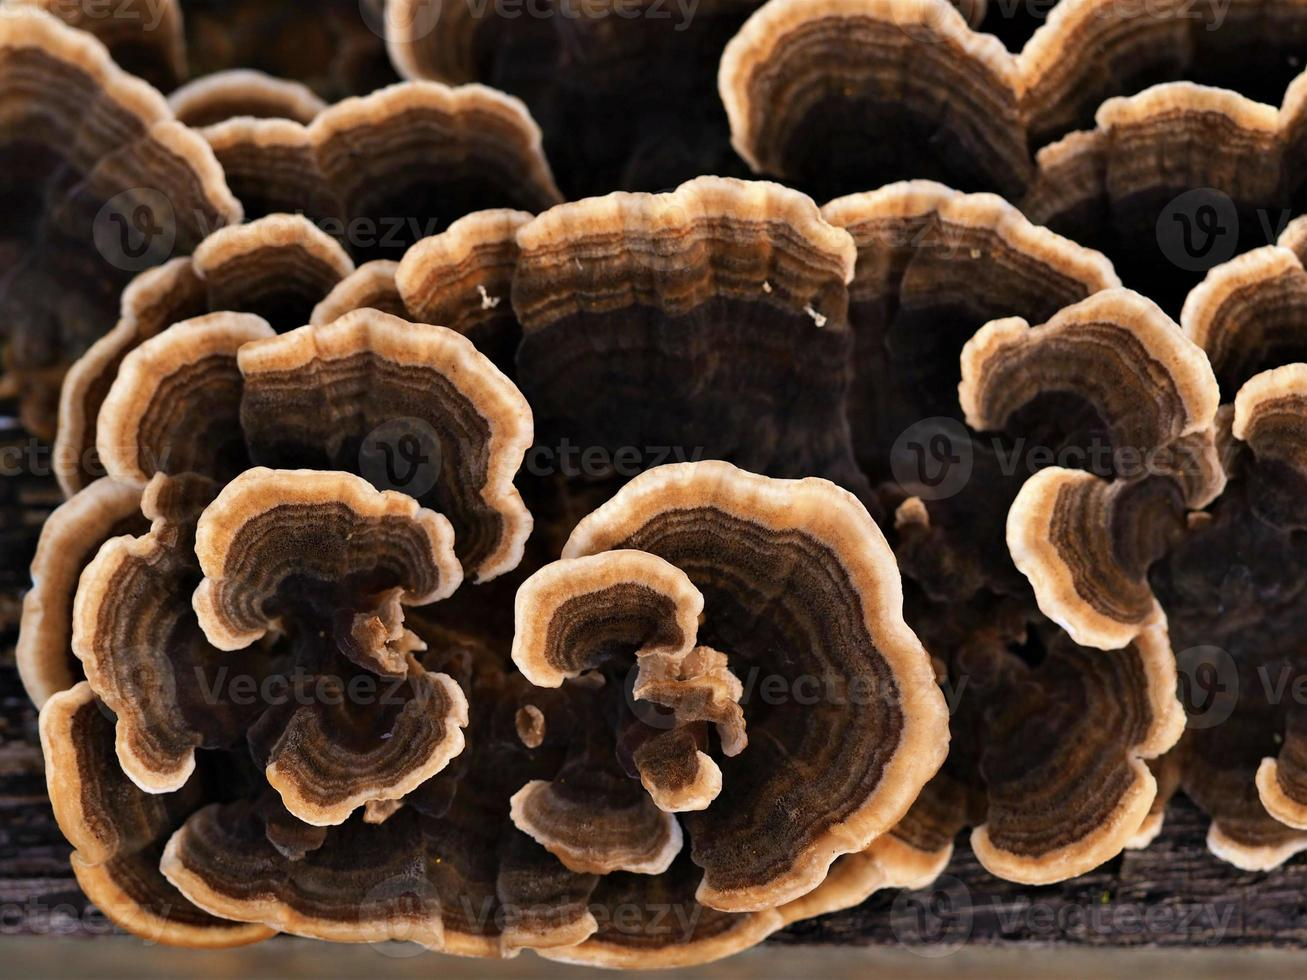 Closeup of an attractive brown patterned fungus growing on a fallen tree trunk from above photo